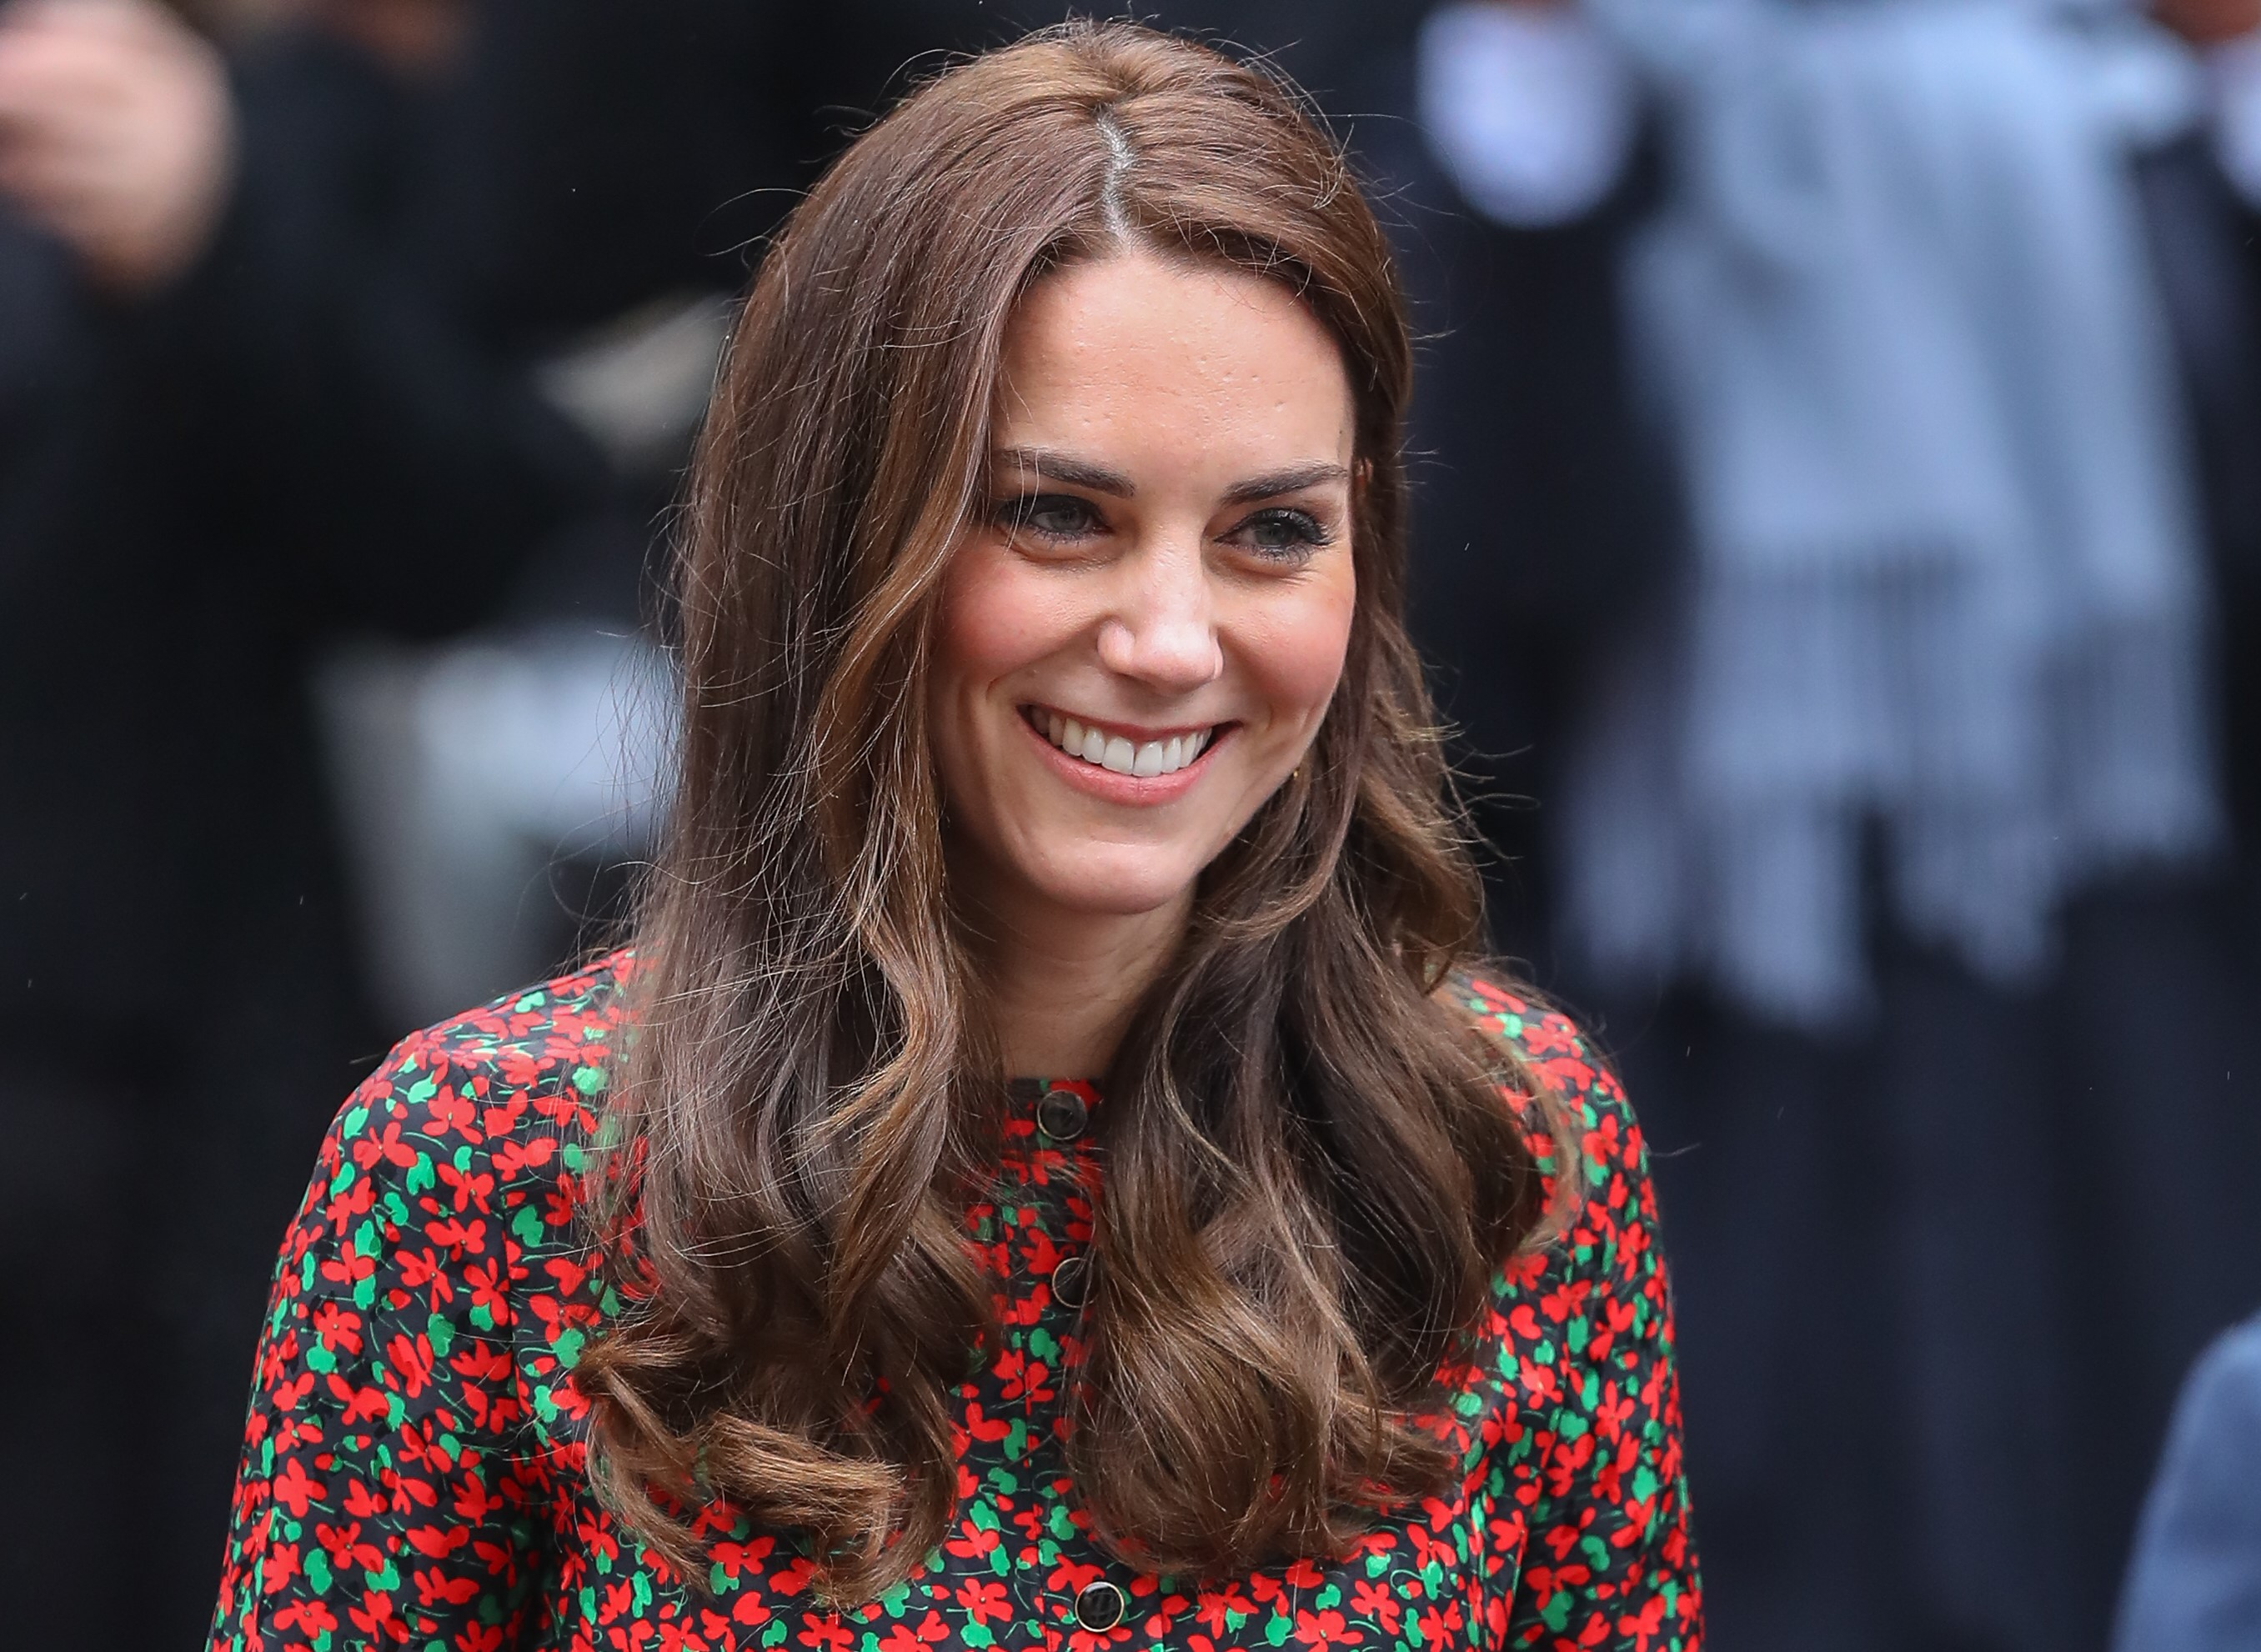 Inside the Duchess of Cambridge's 35th birthday celebrations today